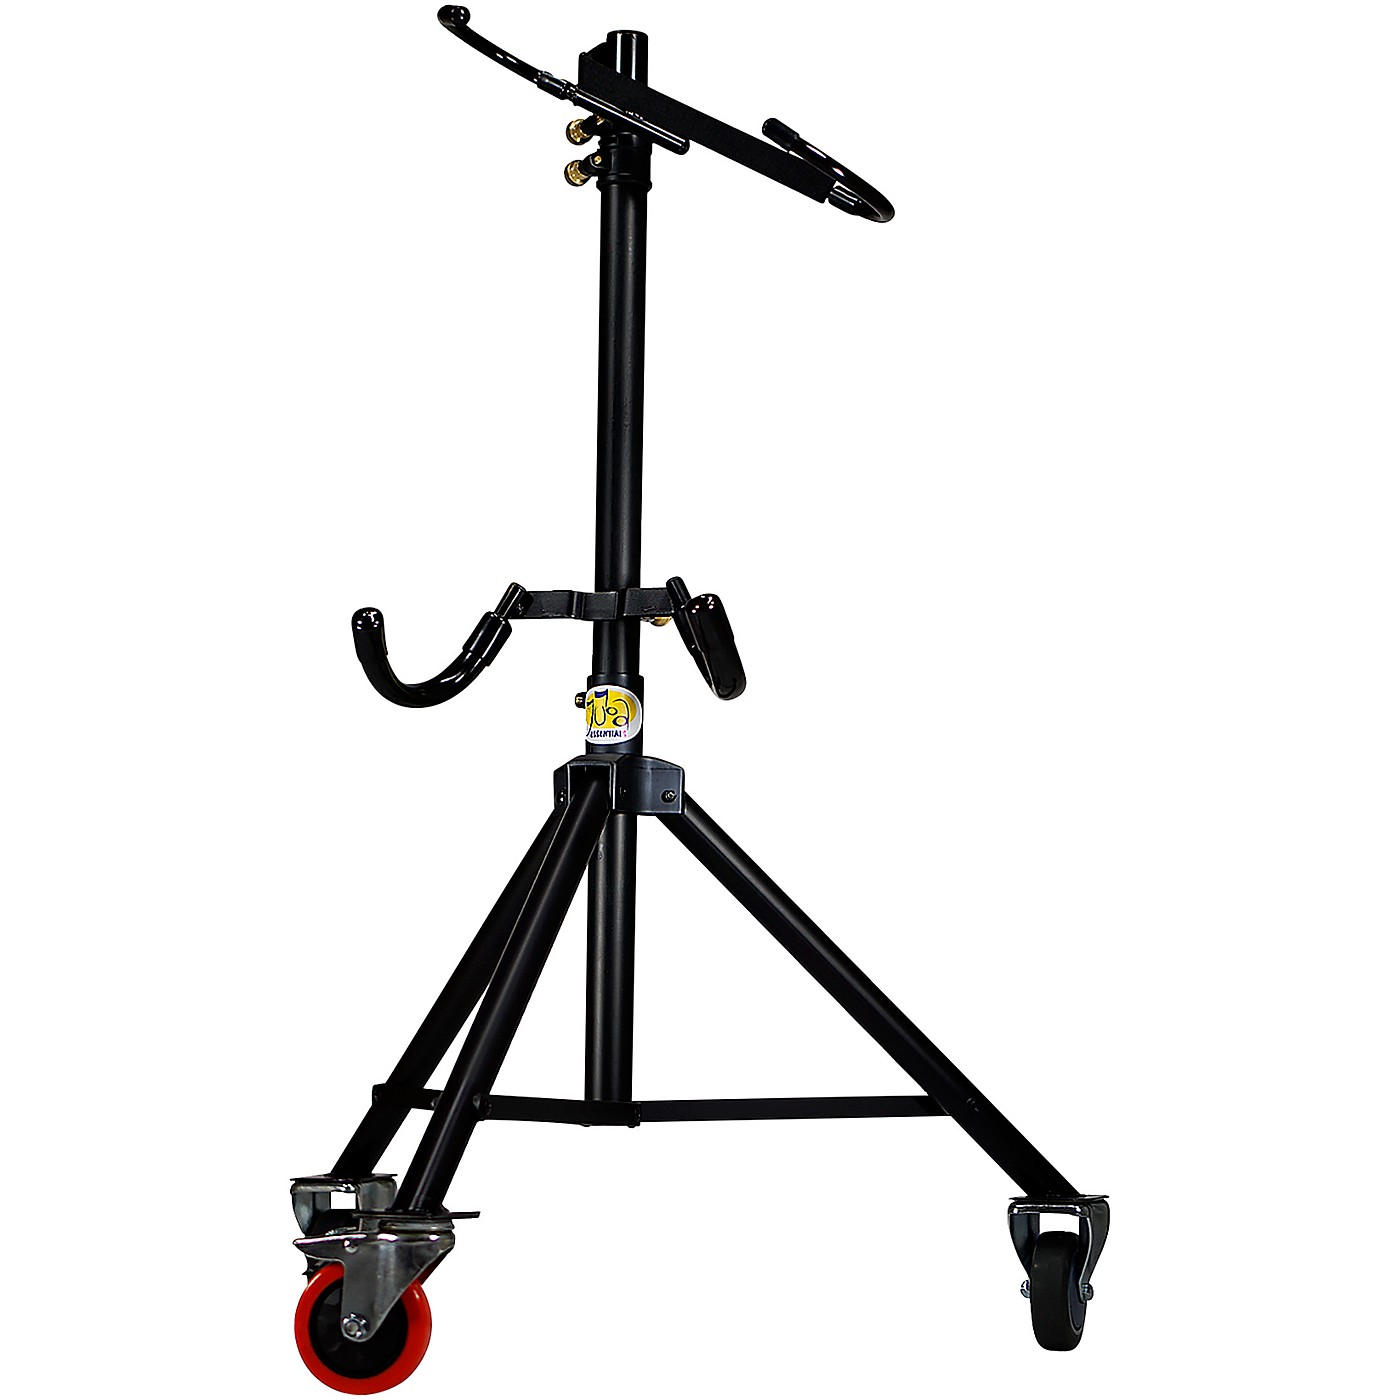 Tuba Essentials The Hug Adjustable Euphonium Stand for Left Side Mouthpiece Instruments thumbnail